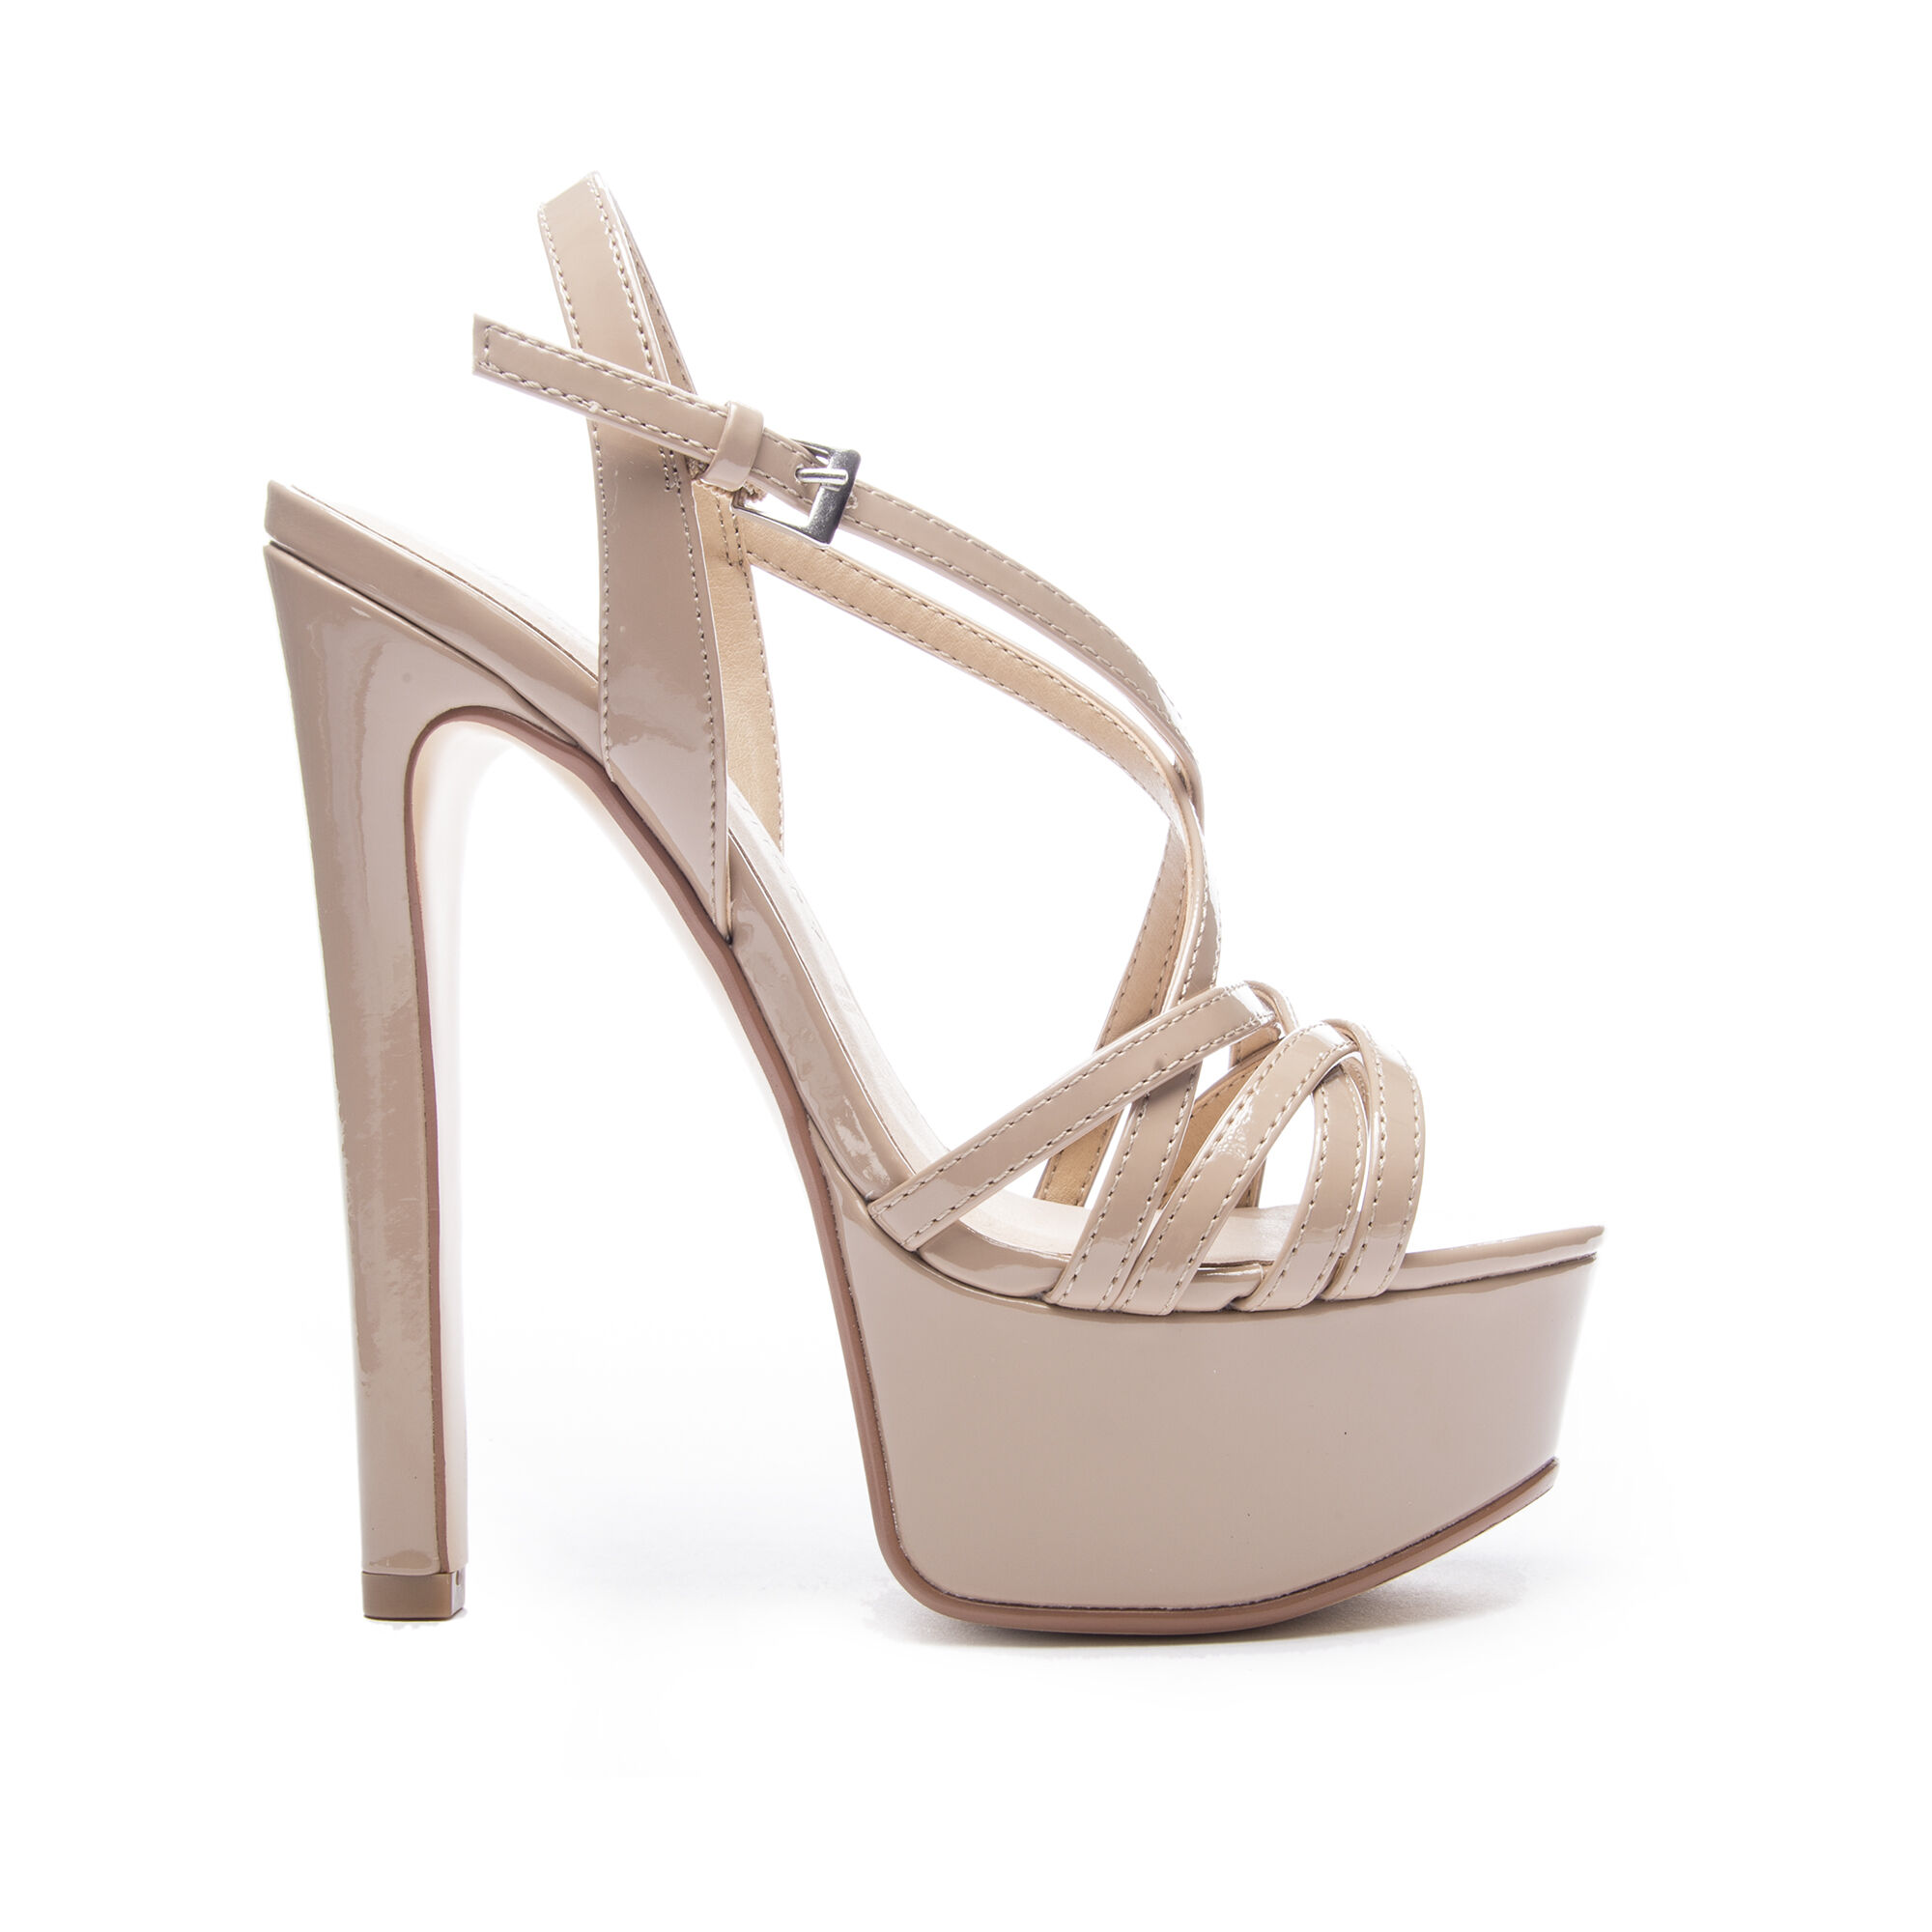 88f8b92a2c Teaser 2 Platform Stiletto Sandal | Chinese Laundry